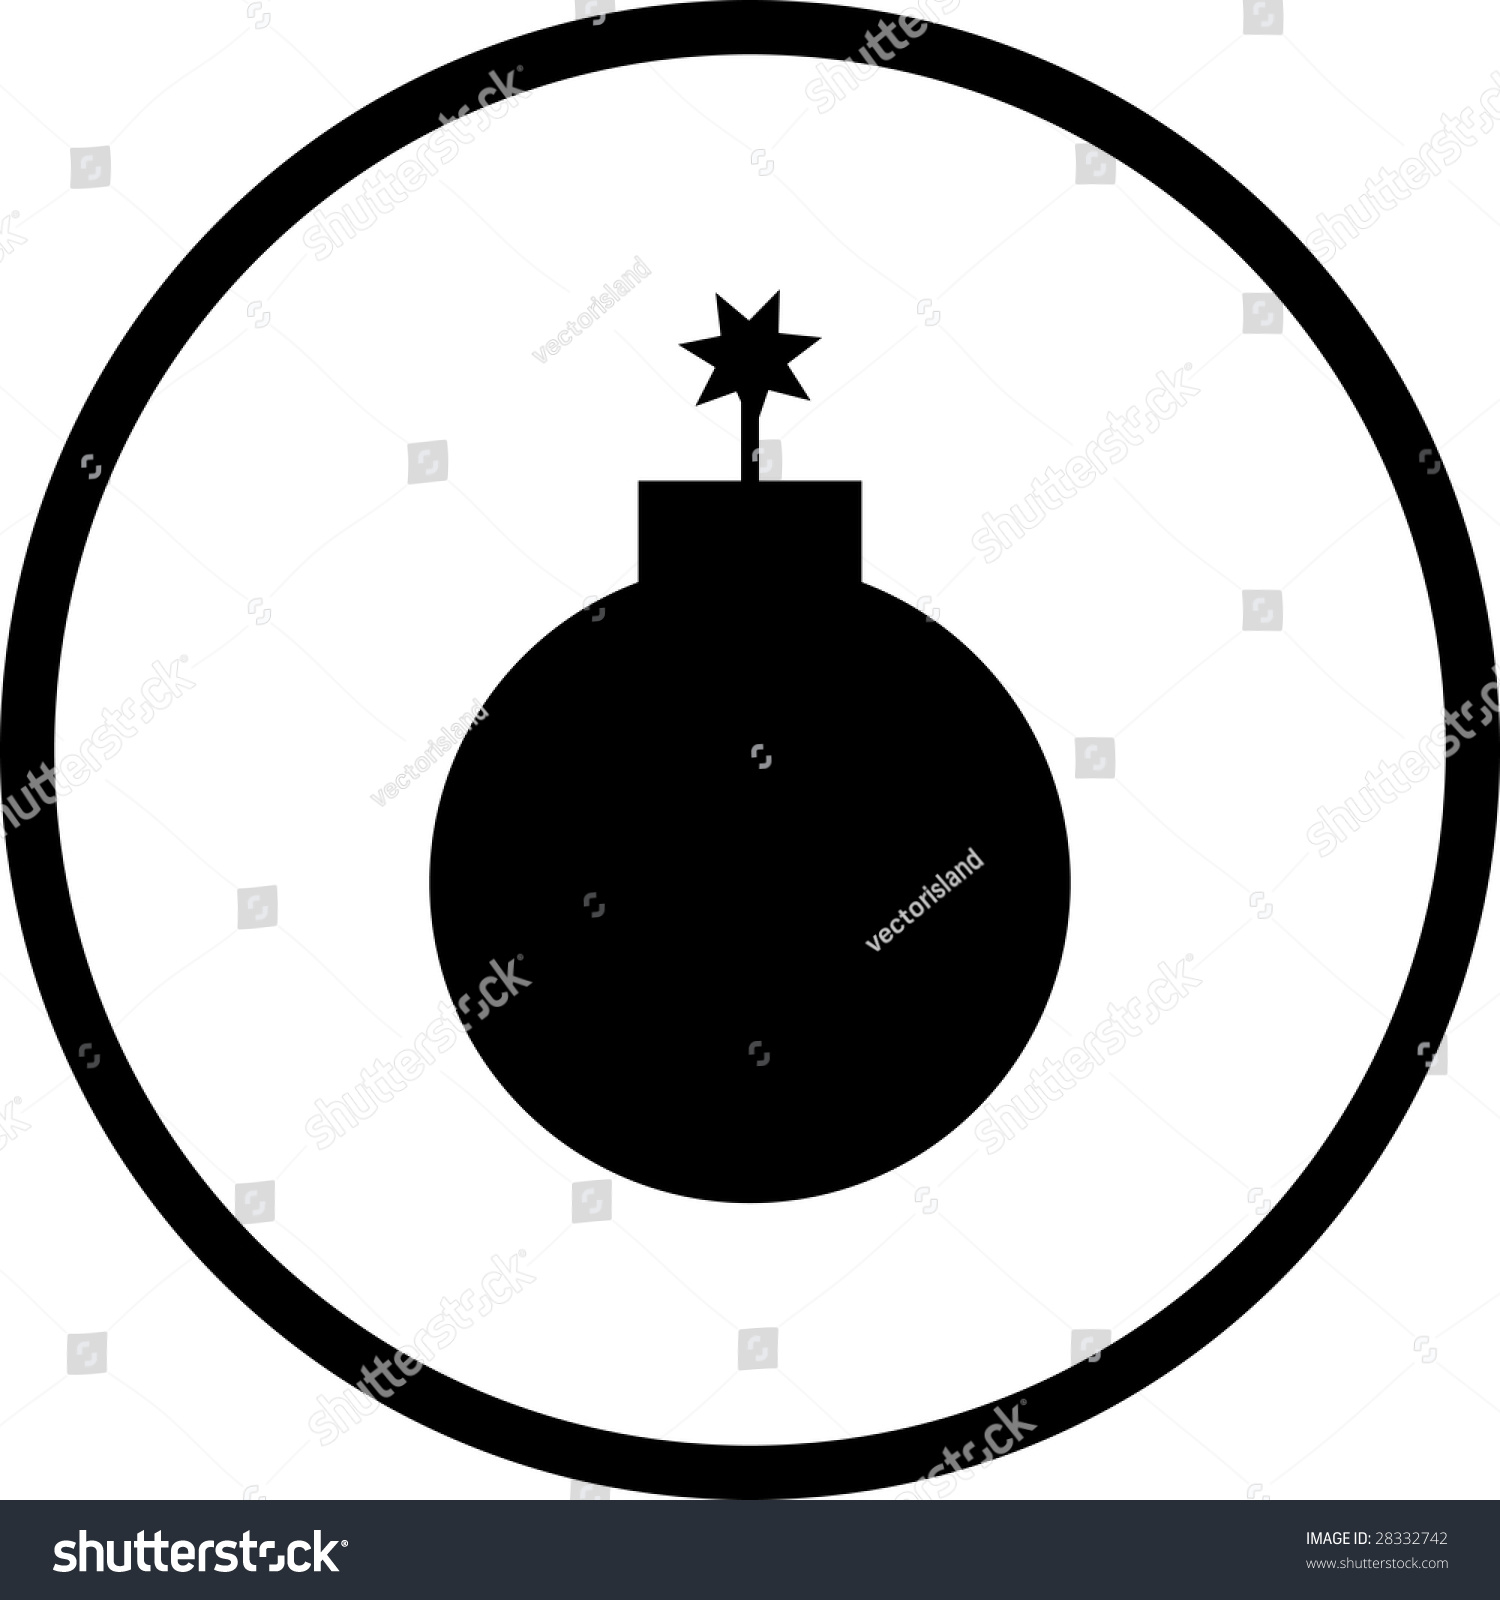 Bomb Symbol Stock Photo 28332742 : Shutterstock